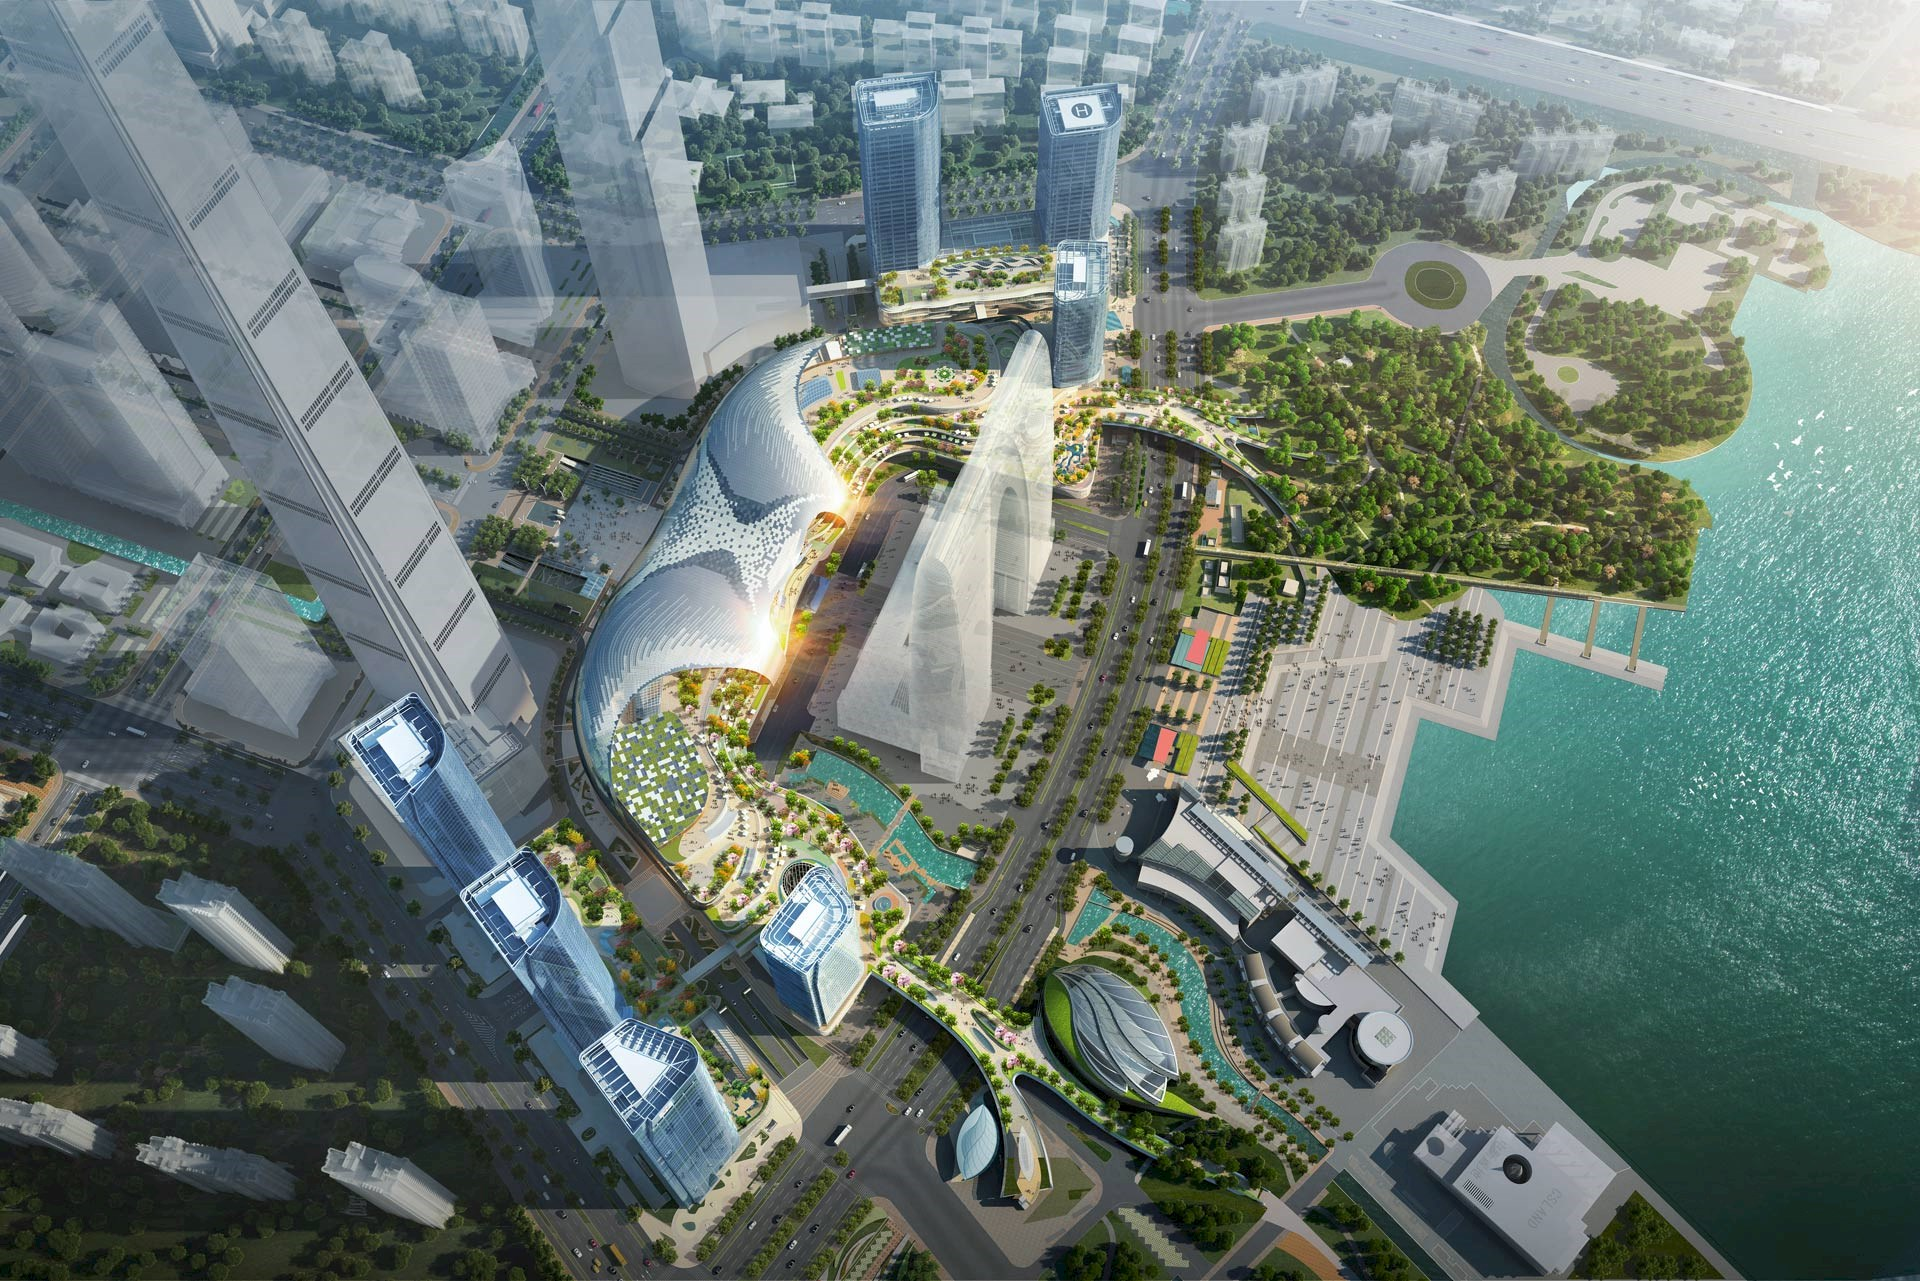 Suzhou Center Unveiled with World's Largest Monocoque Roof